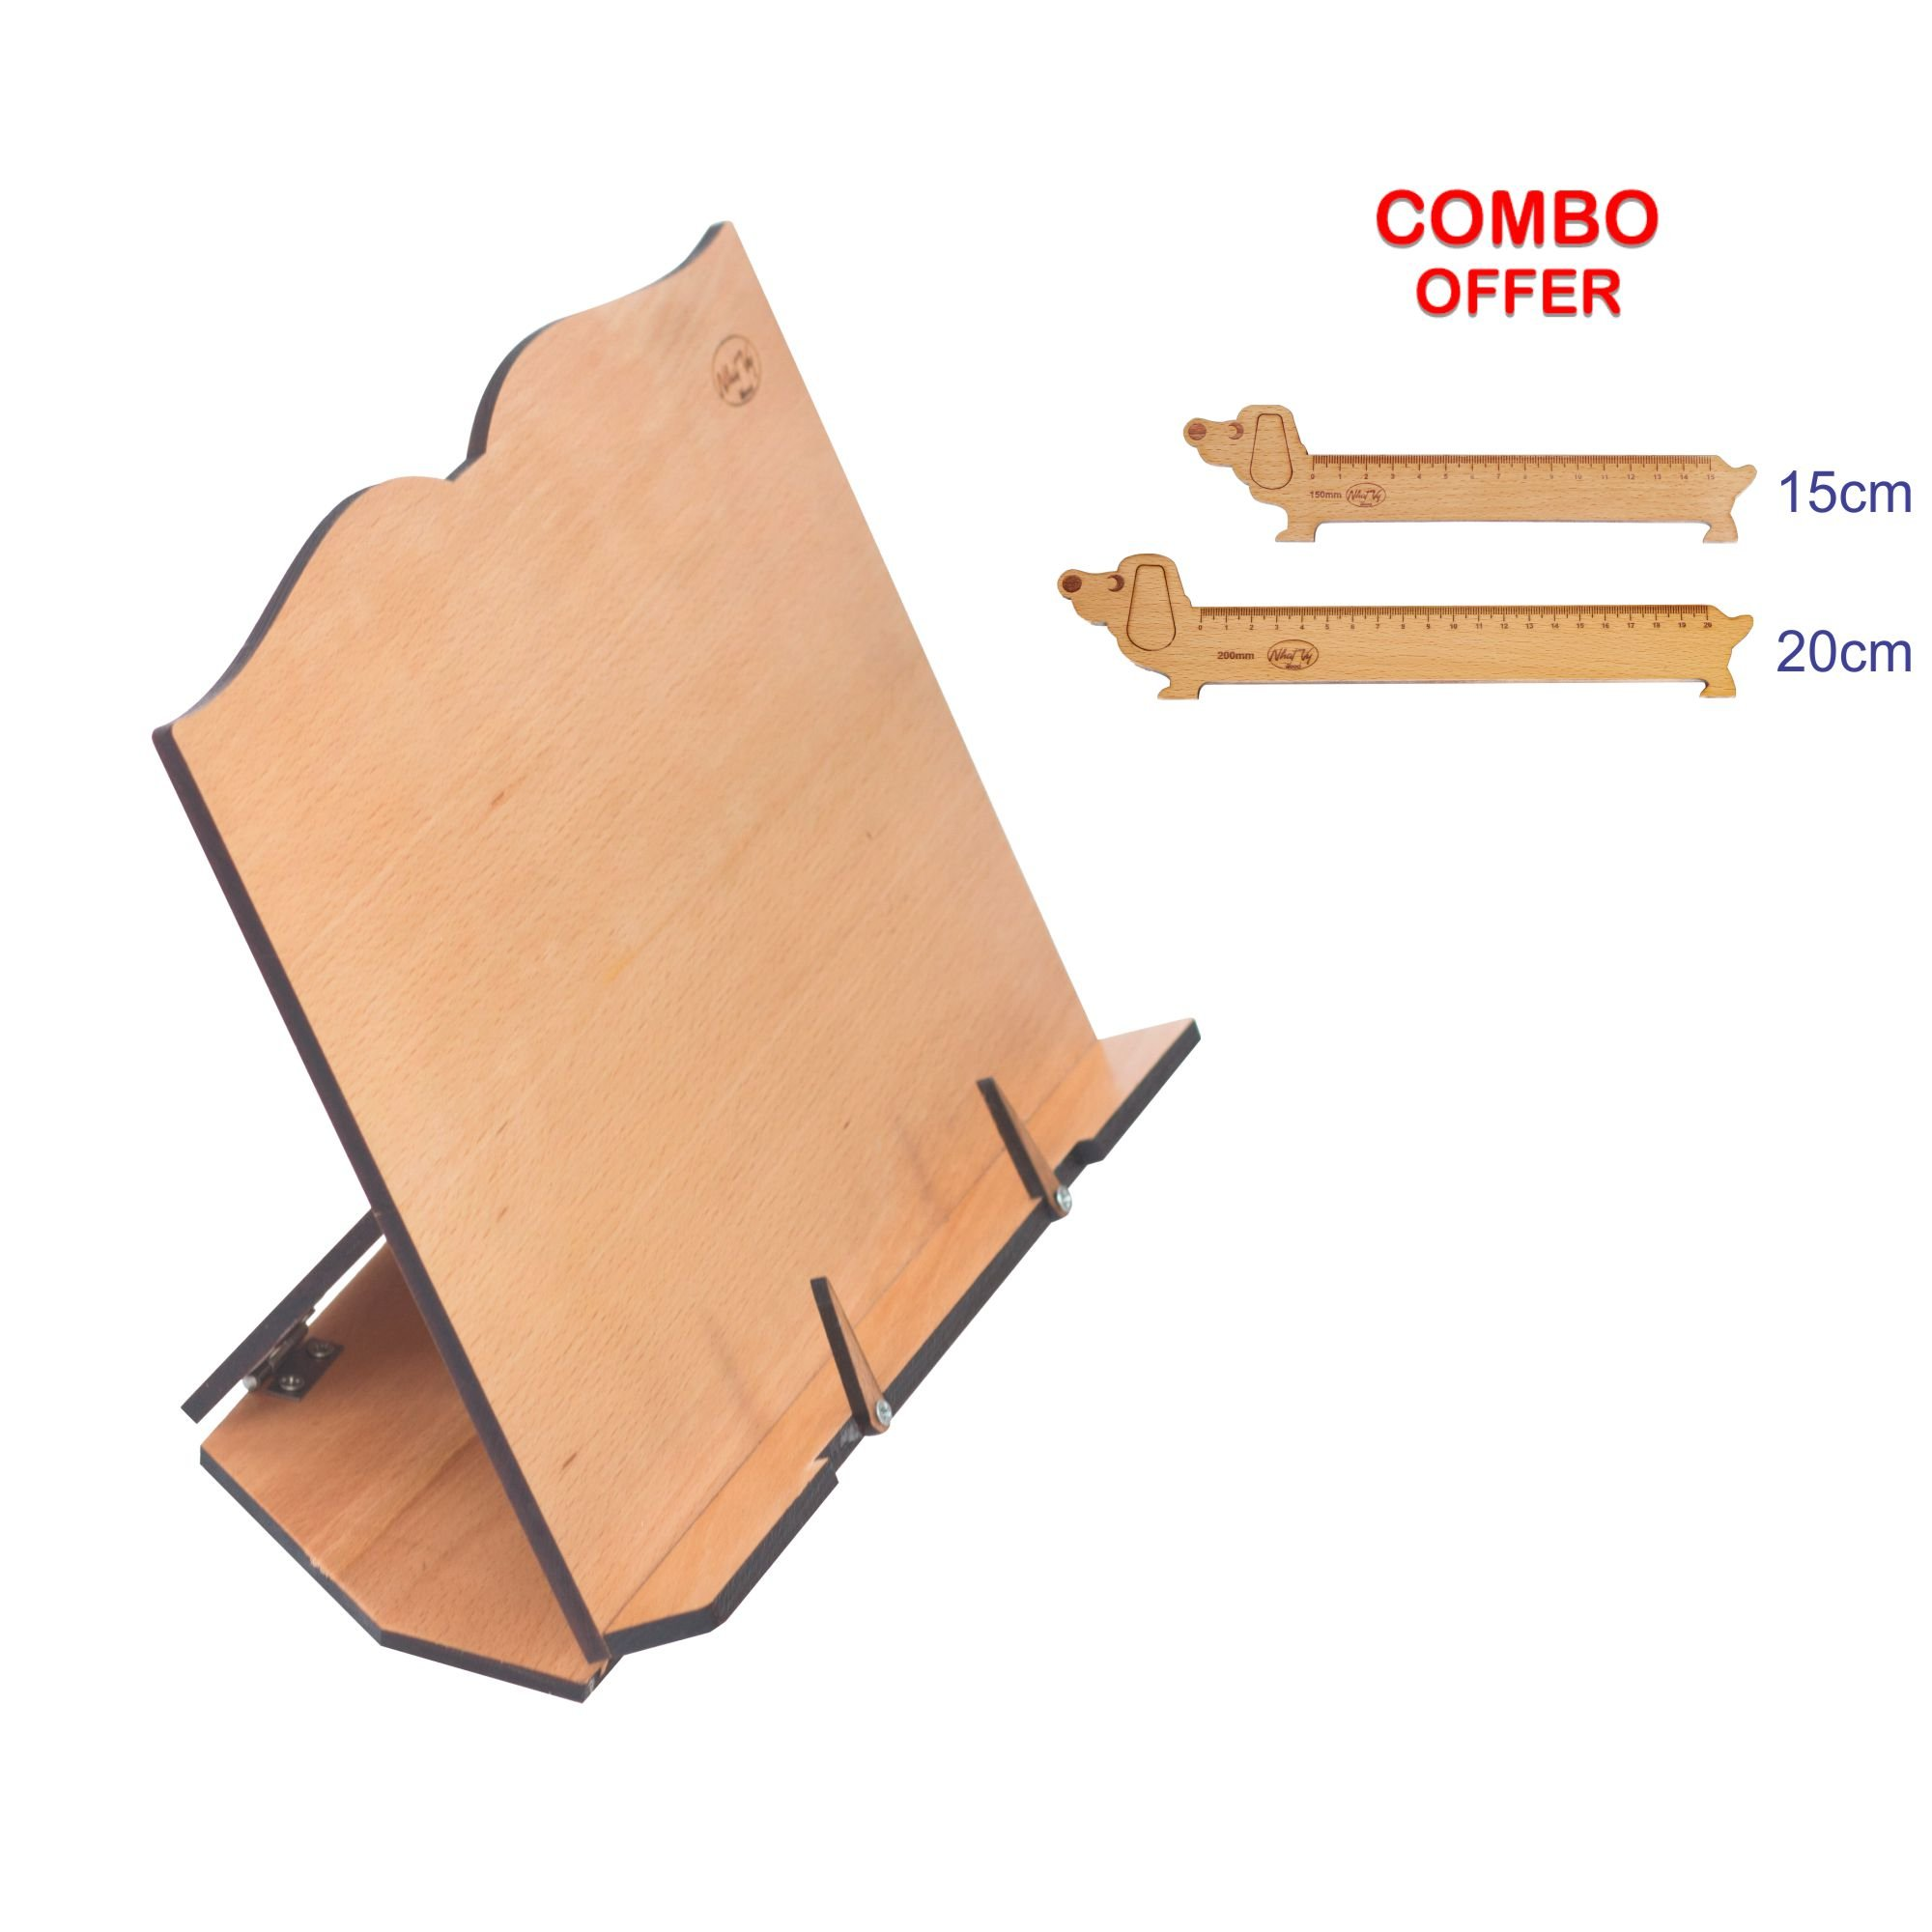 Combo 3 in 1 Beech Wood Book Holder NHATVYWOOD with Two Lovely Dog-Shaped rulers, Adjustable Lightweight Books Holder 11,8 L x 8.8 inch